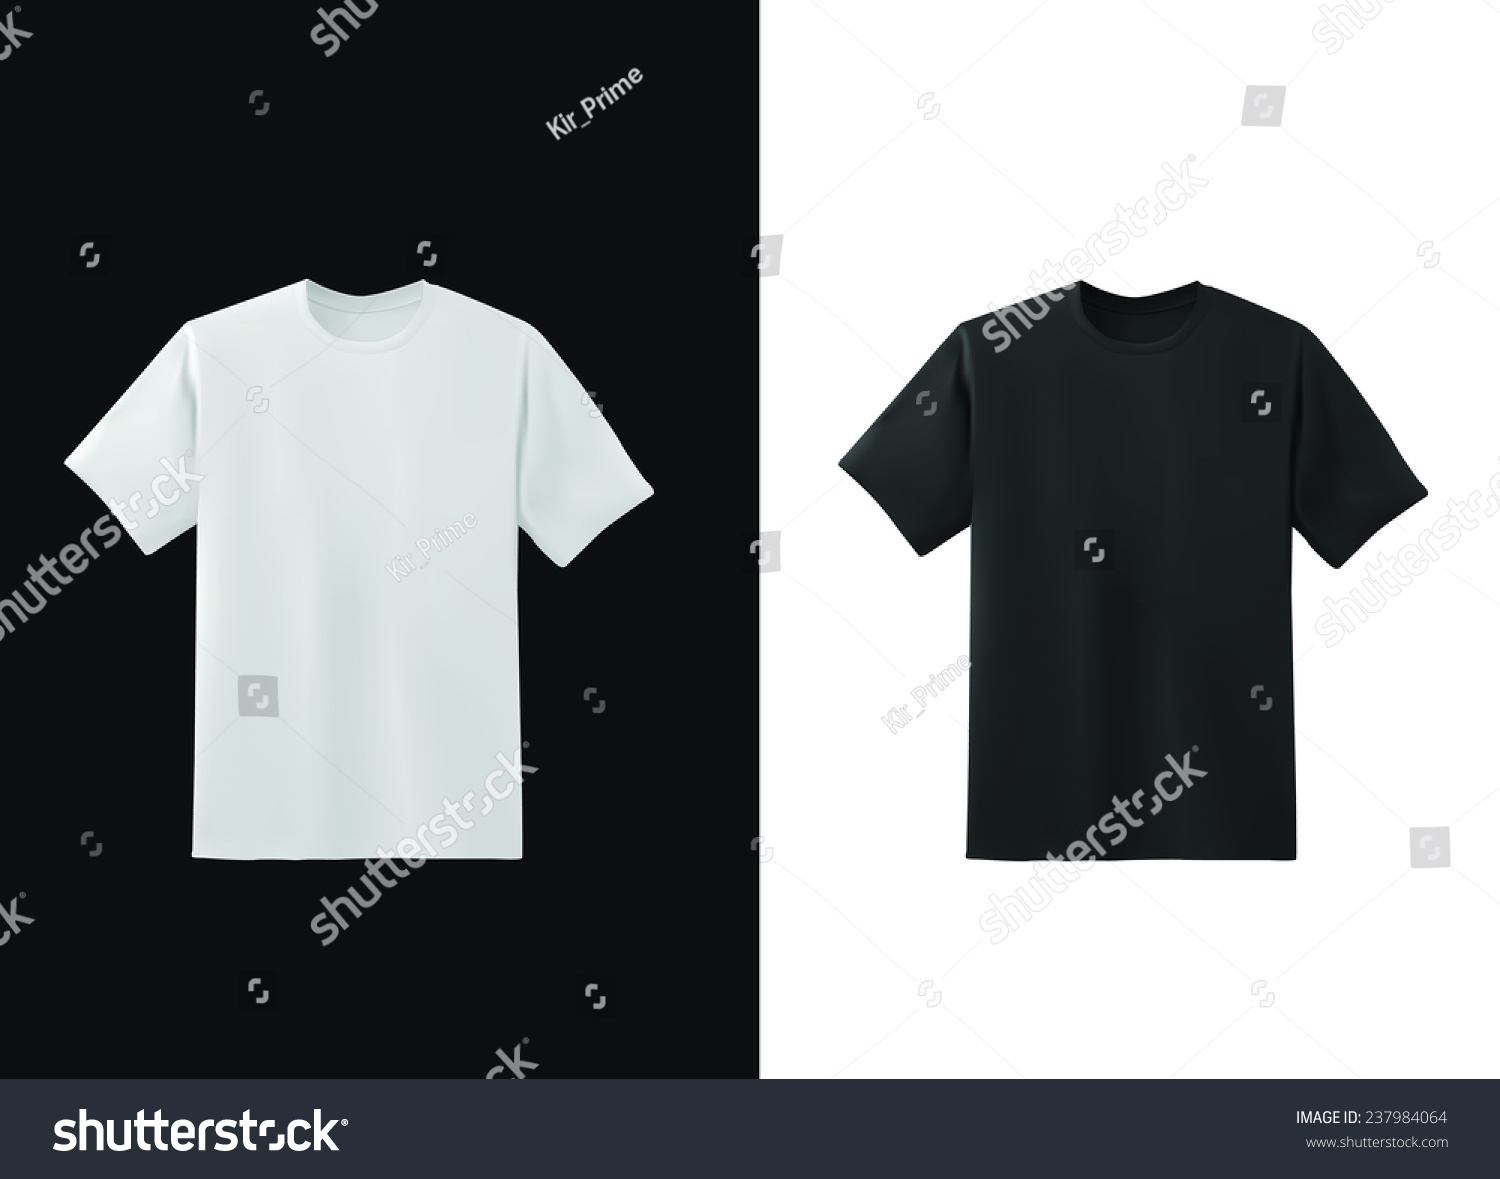 black t shirt vector - photo #28